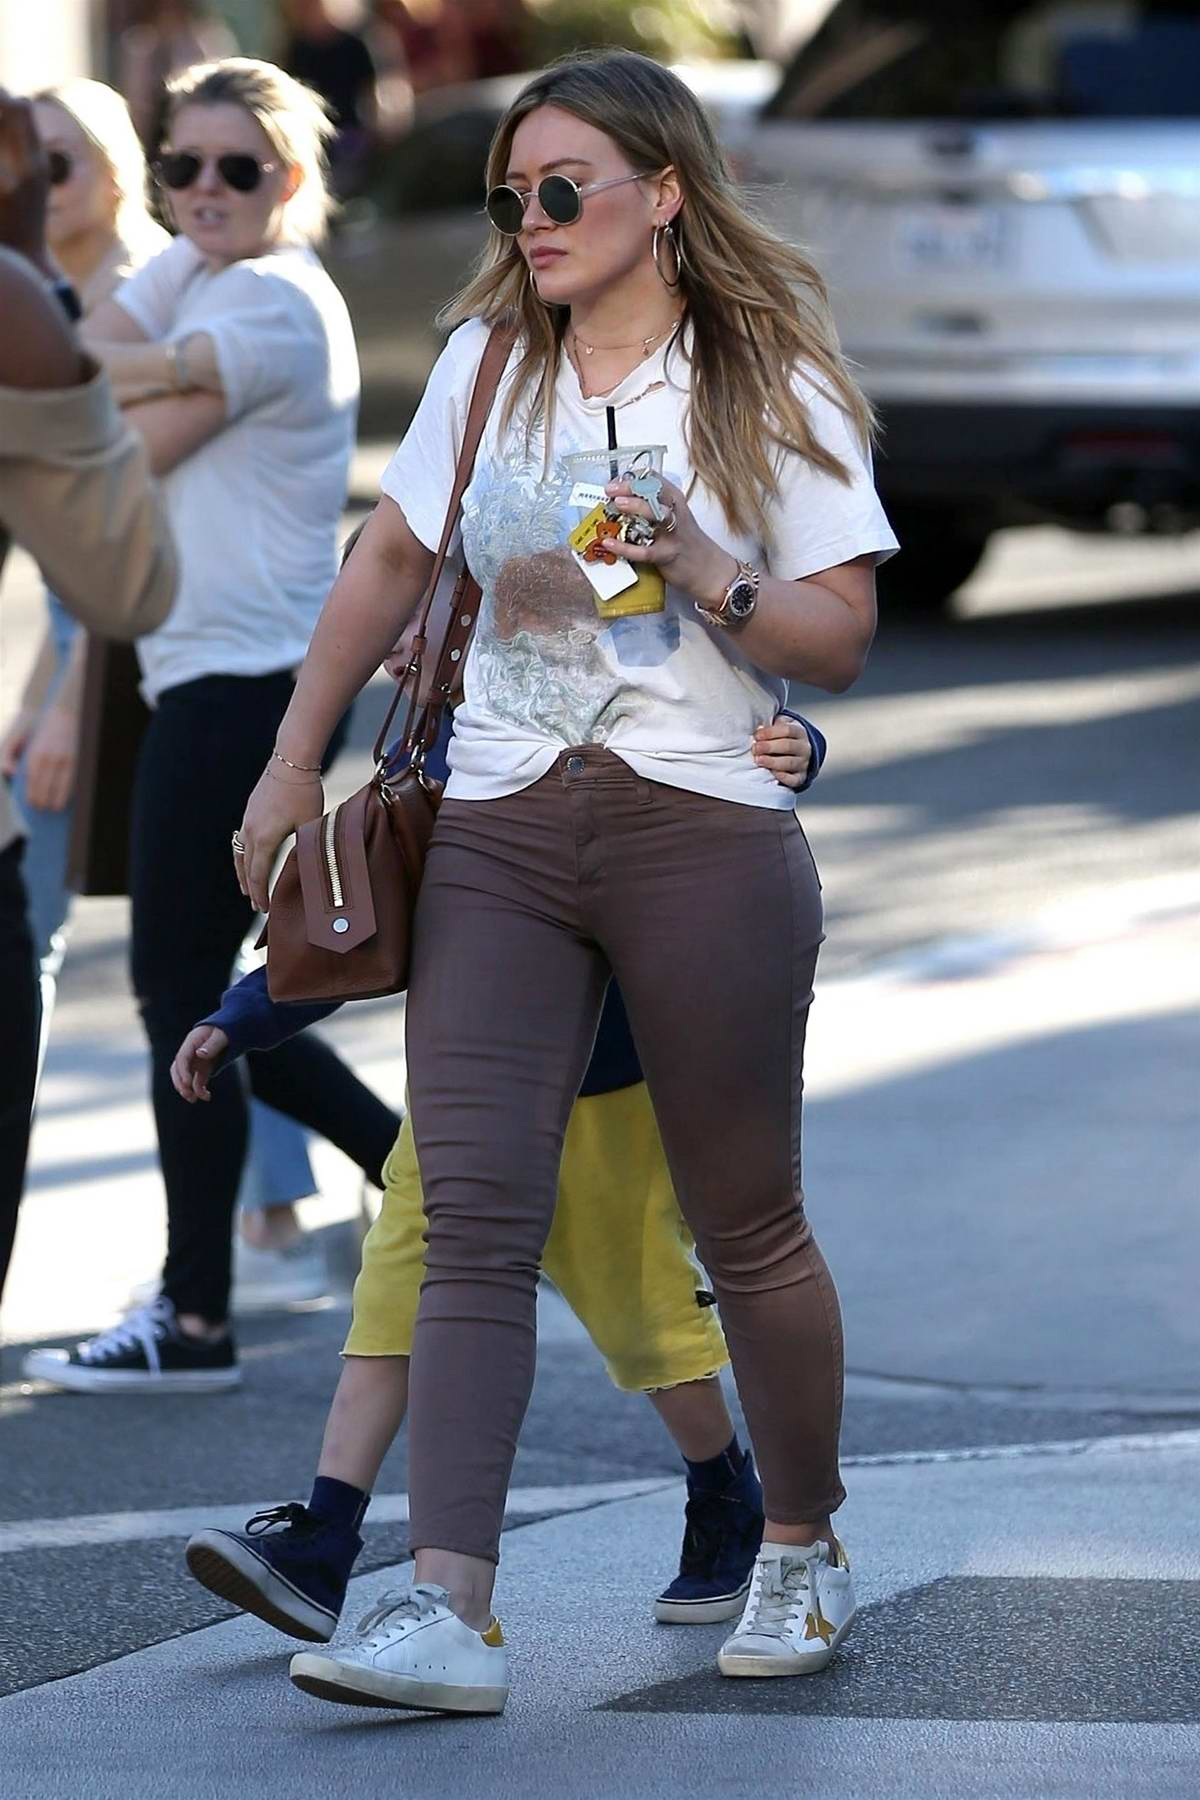 Hilary Duff and her son spotted out shopping with friends in Beverly Hills, Los Angeles